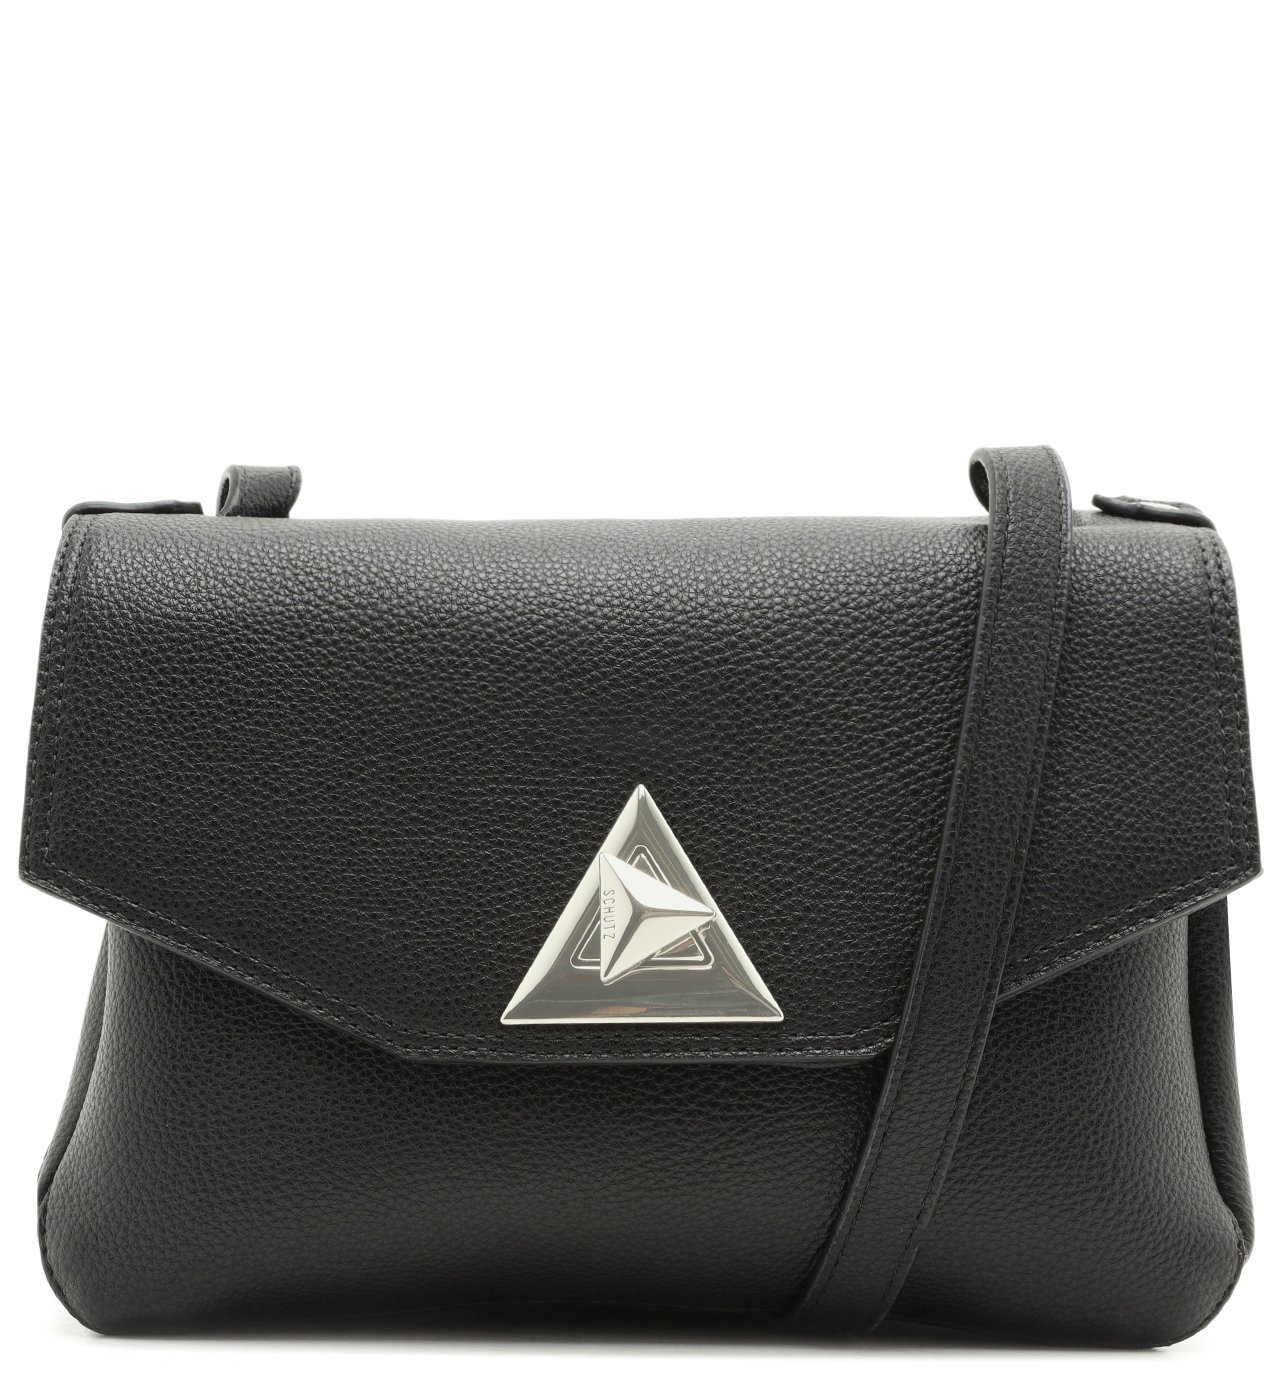 Mini Satchel Bag Leona Black | Schutz